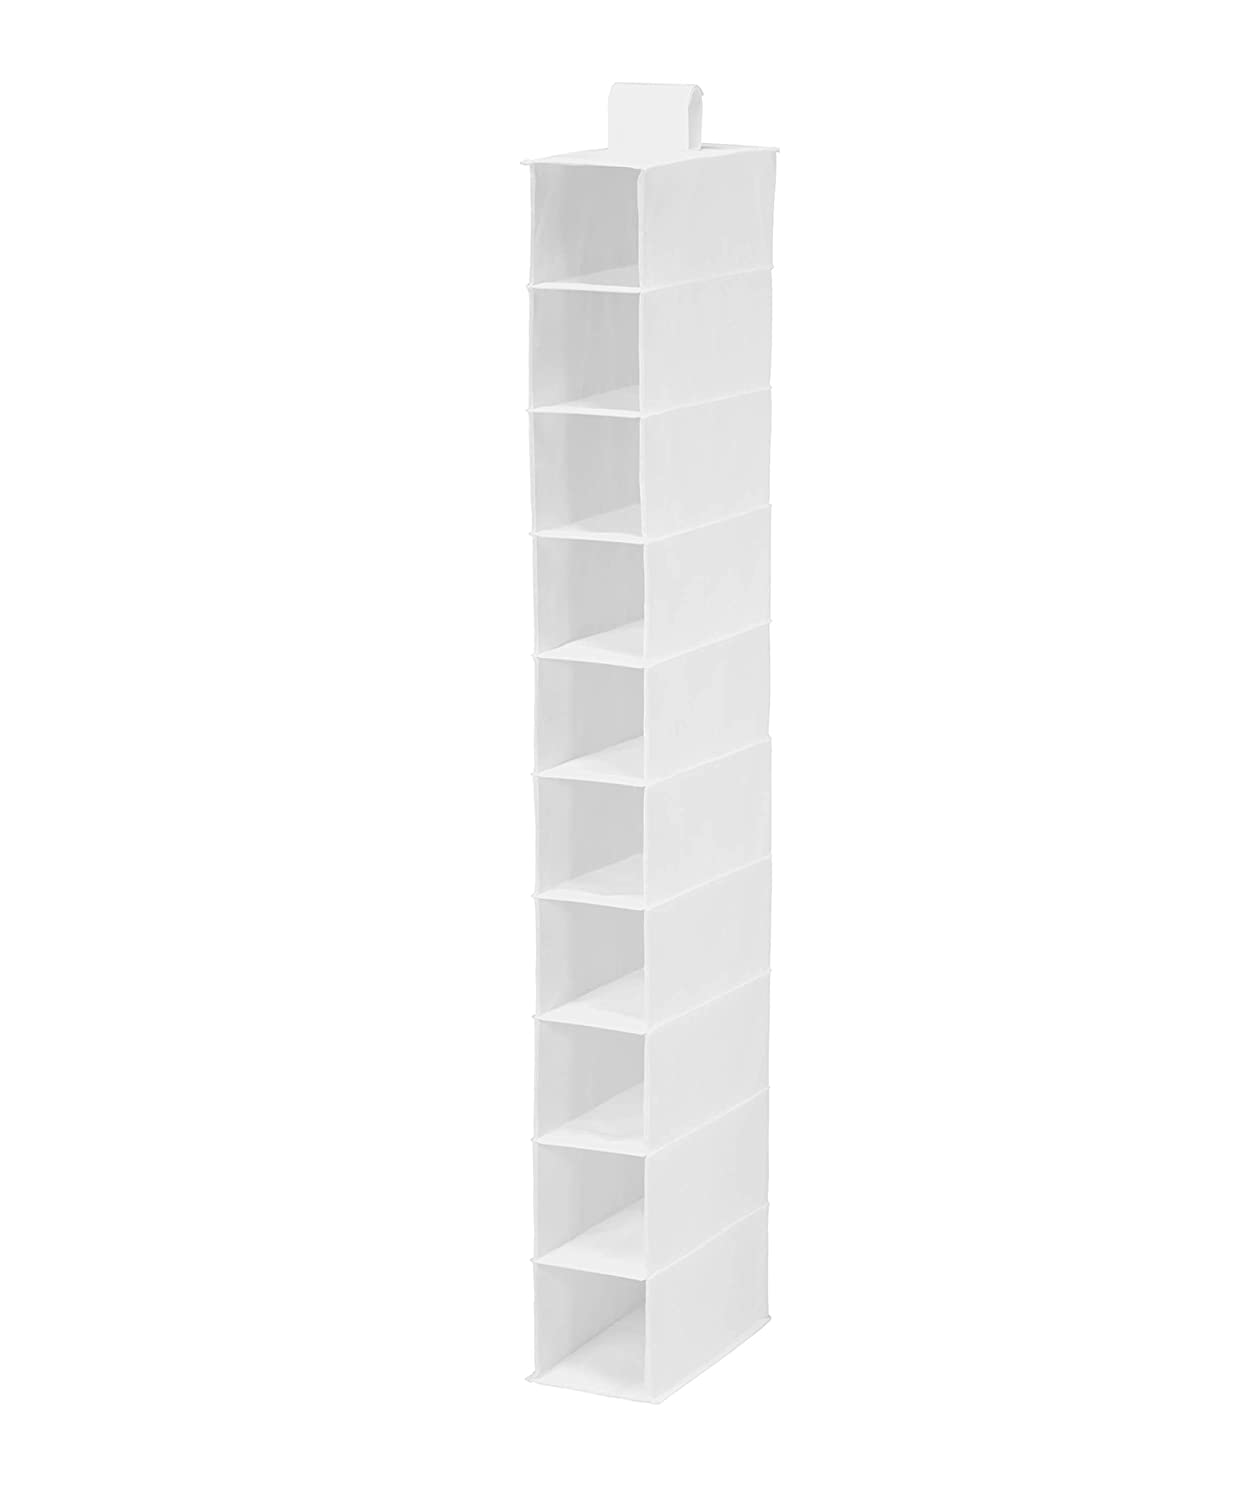 Honey-Can-Do SFT-01240 Hanging Shoe Organizer, White, 10-Shelf